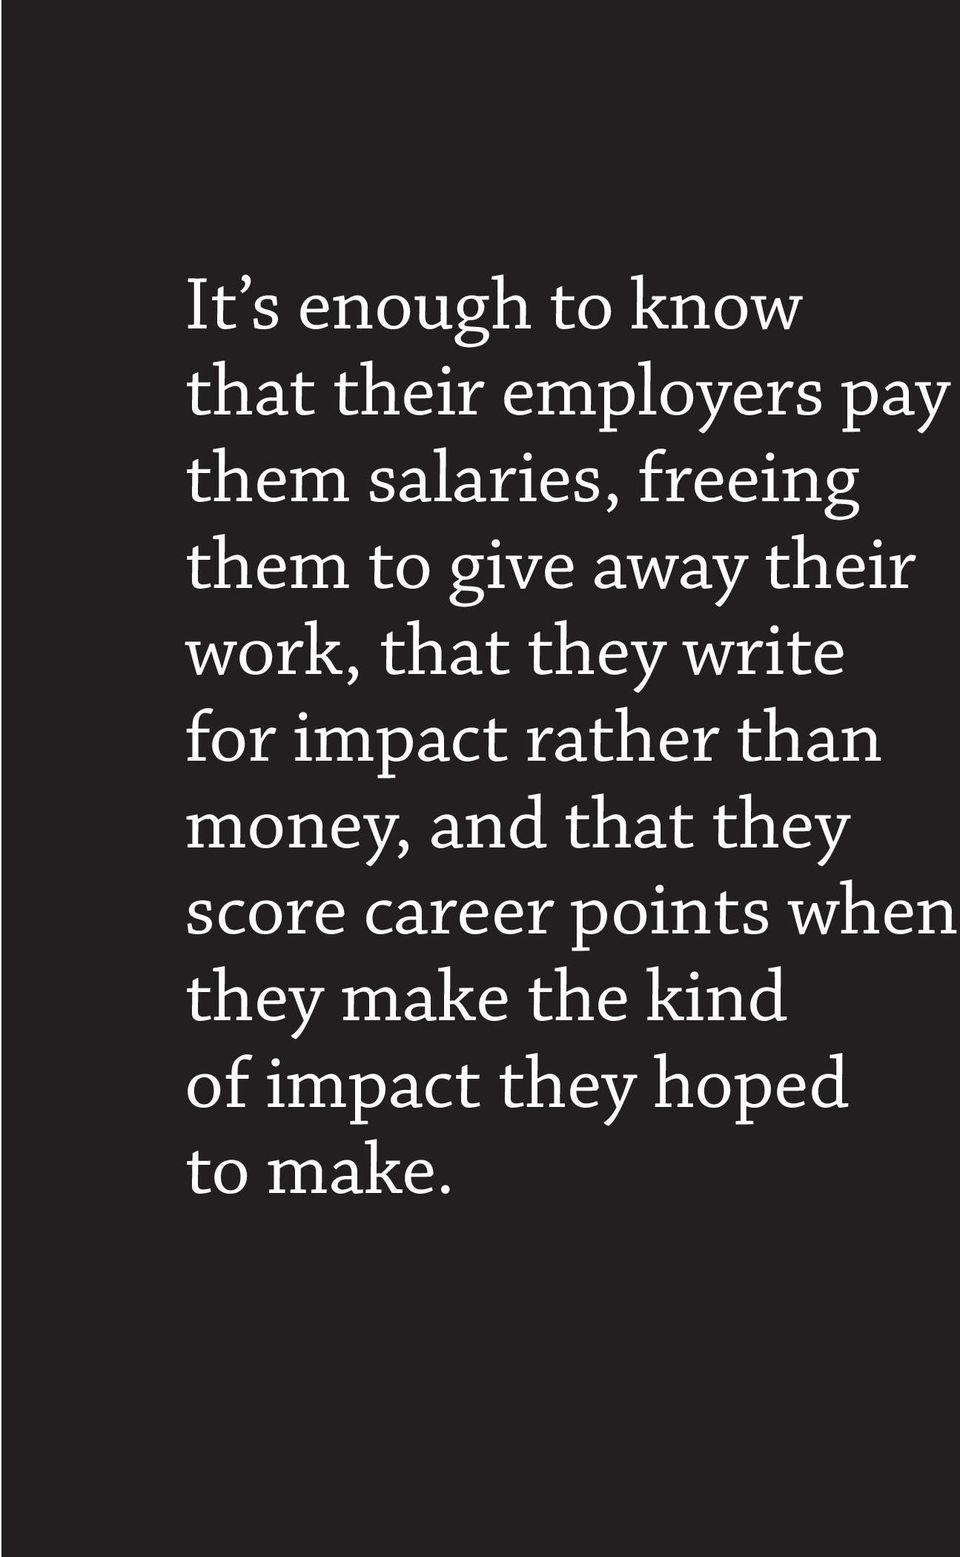 write for impact rather than money, and that they score